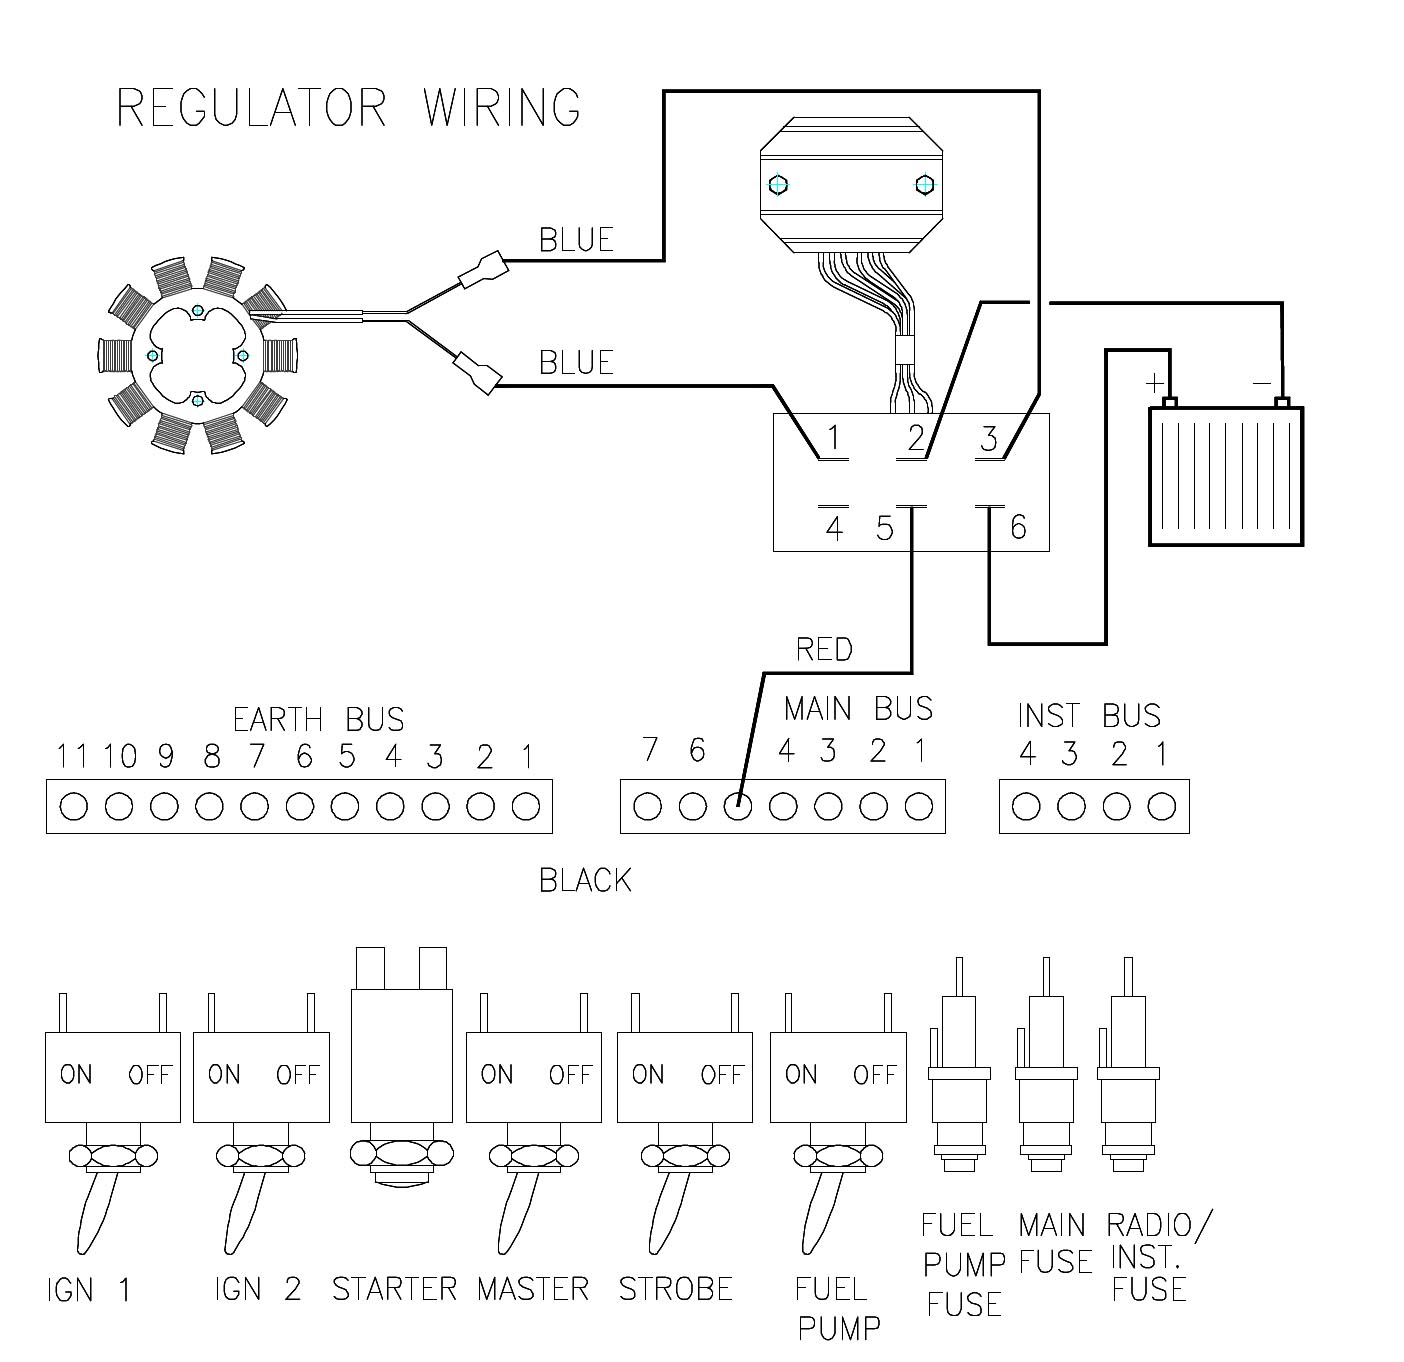 Wiring diagram cessna 12 volt alternator readingrat aeroelectric list digest sun 072008wiring diagramwiring diagram asfbconference2016